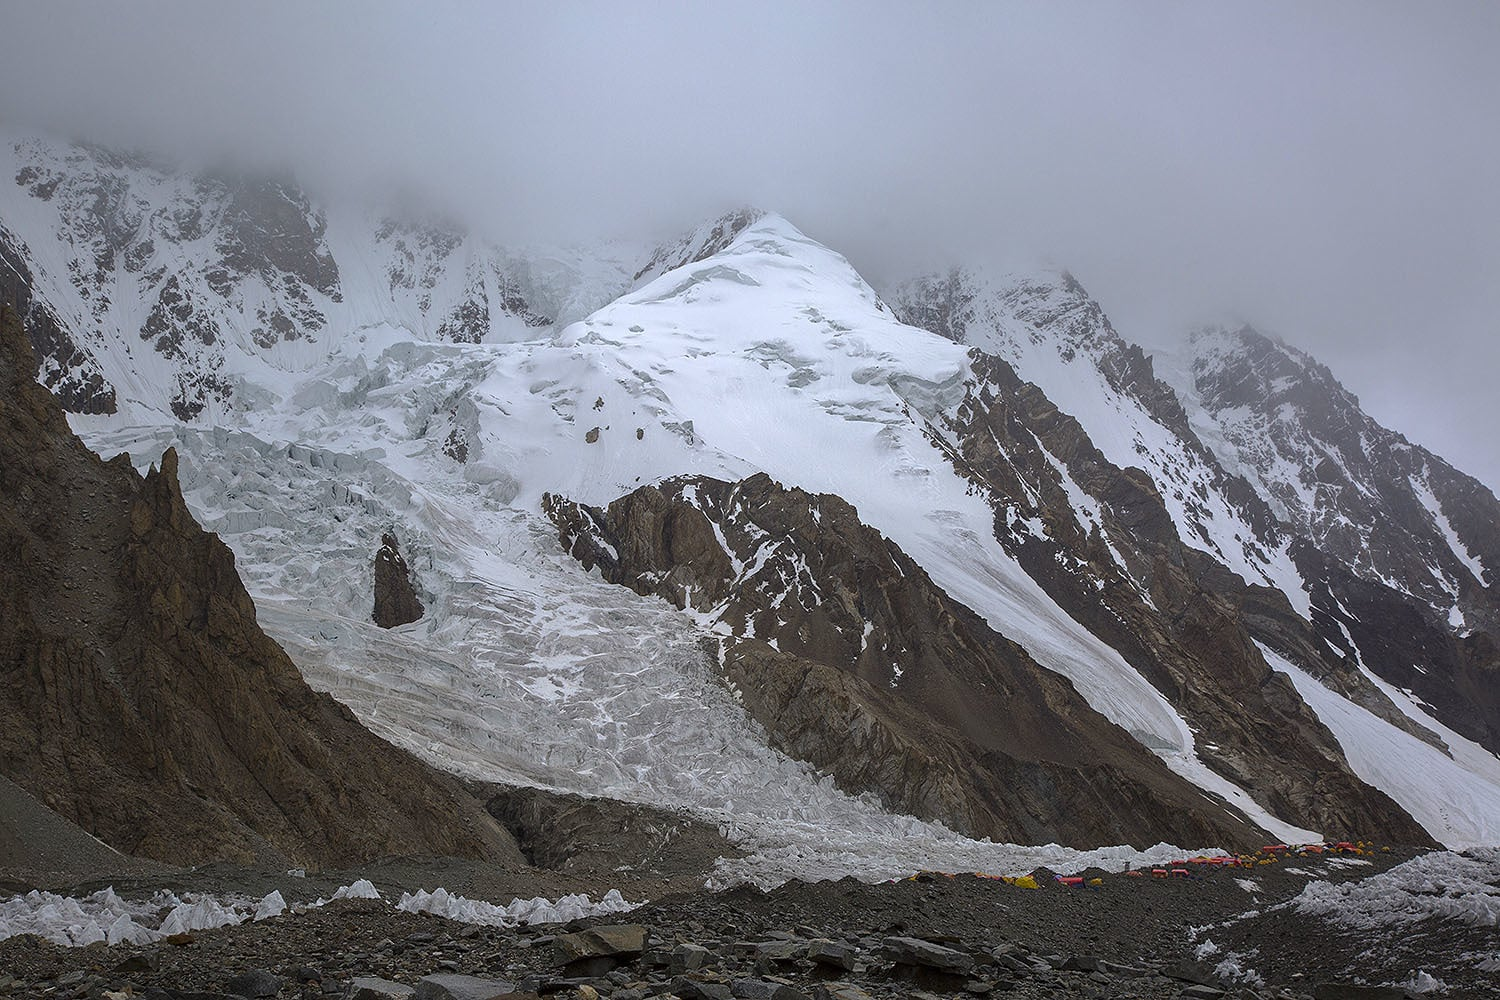 A view of the K2 base camp.